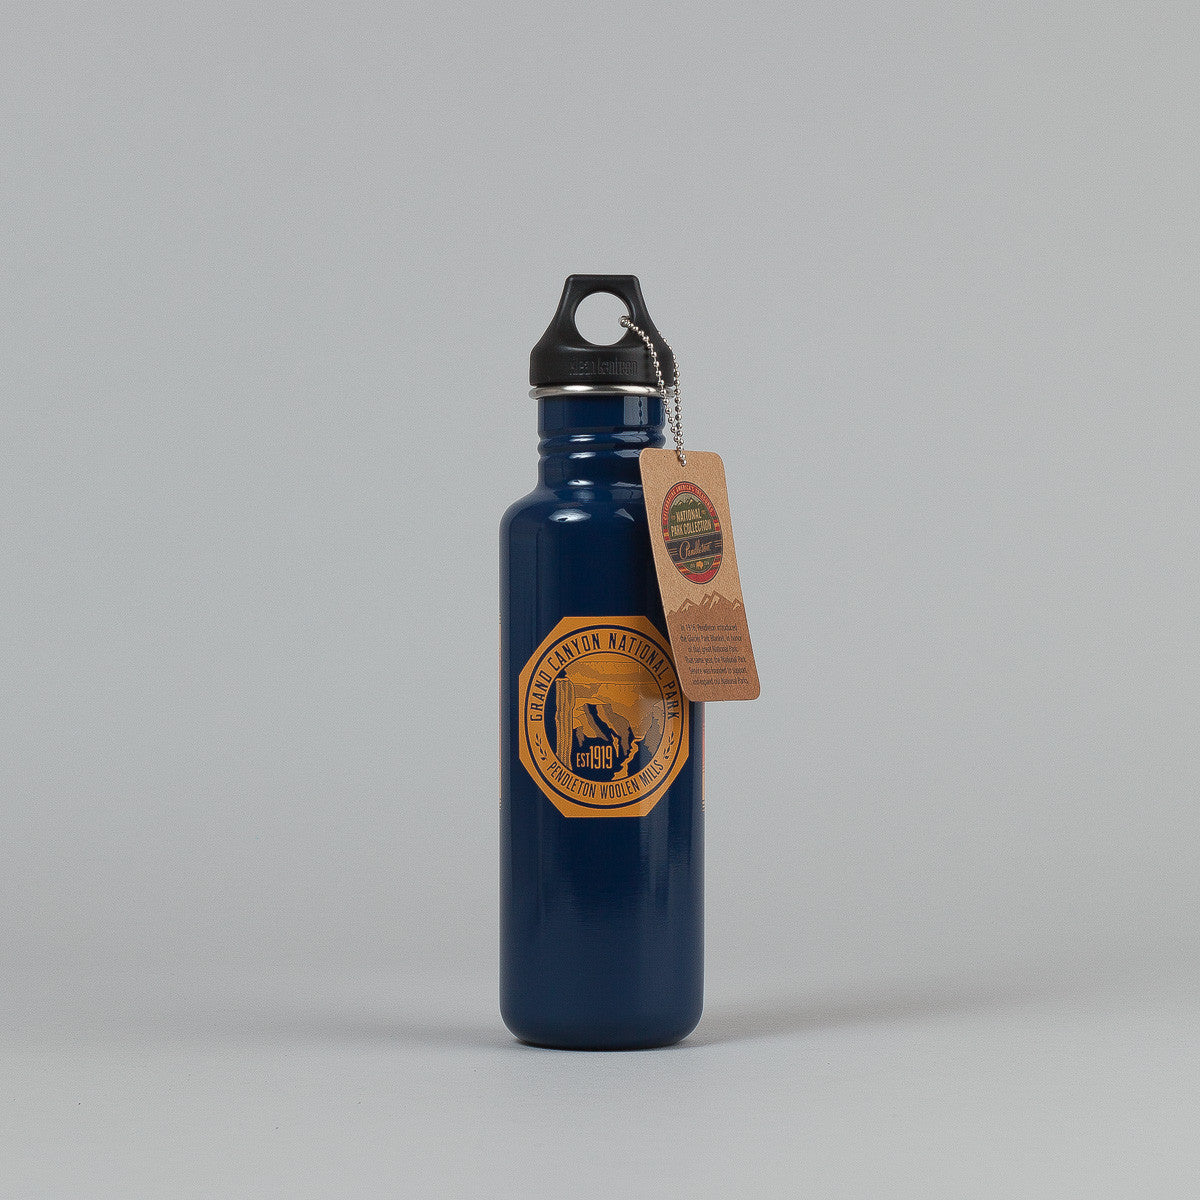 Pendleton Stainless Steel Water Bottle - Grand Canyon